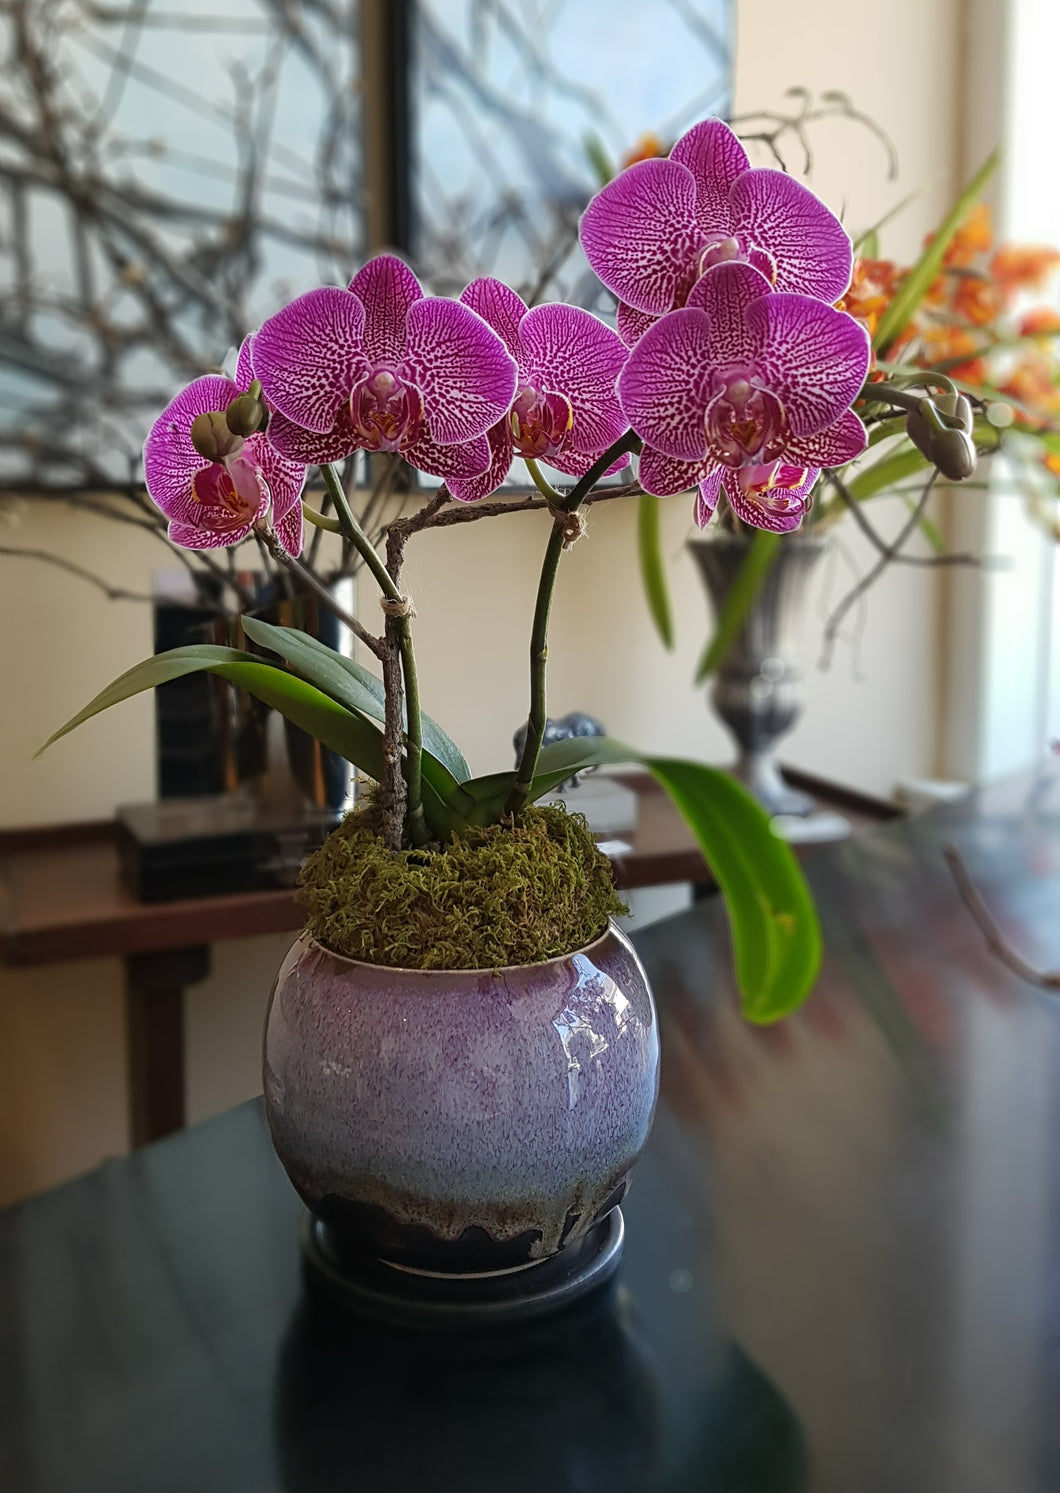 Hummingbird Pink Phalaenopsis arranged in Japanese Satin Glazed Porcelain Vessel, Thrown by Hand